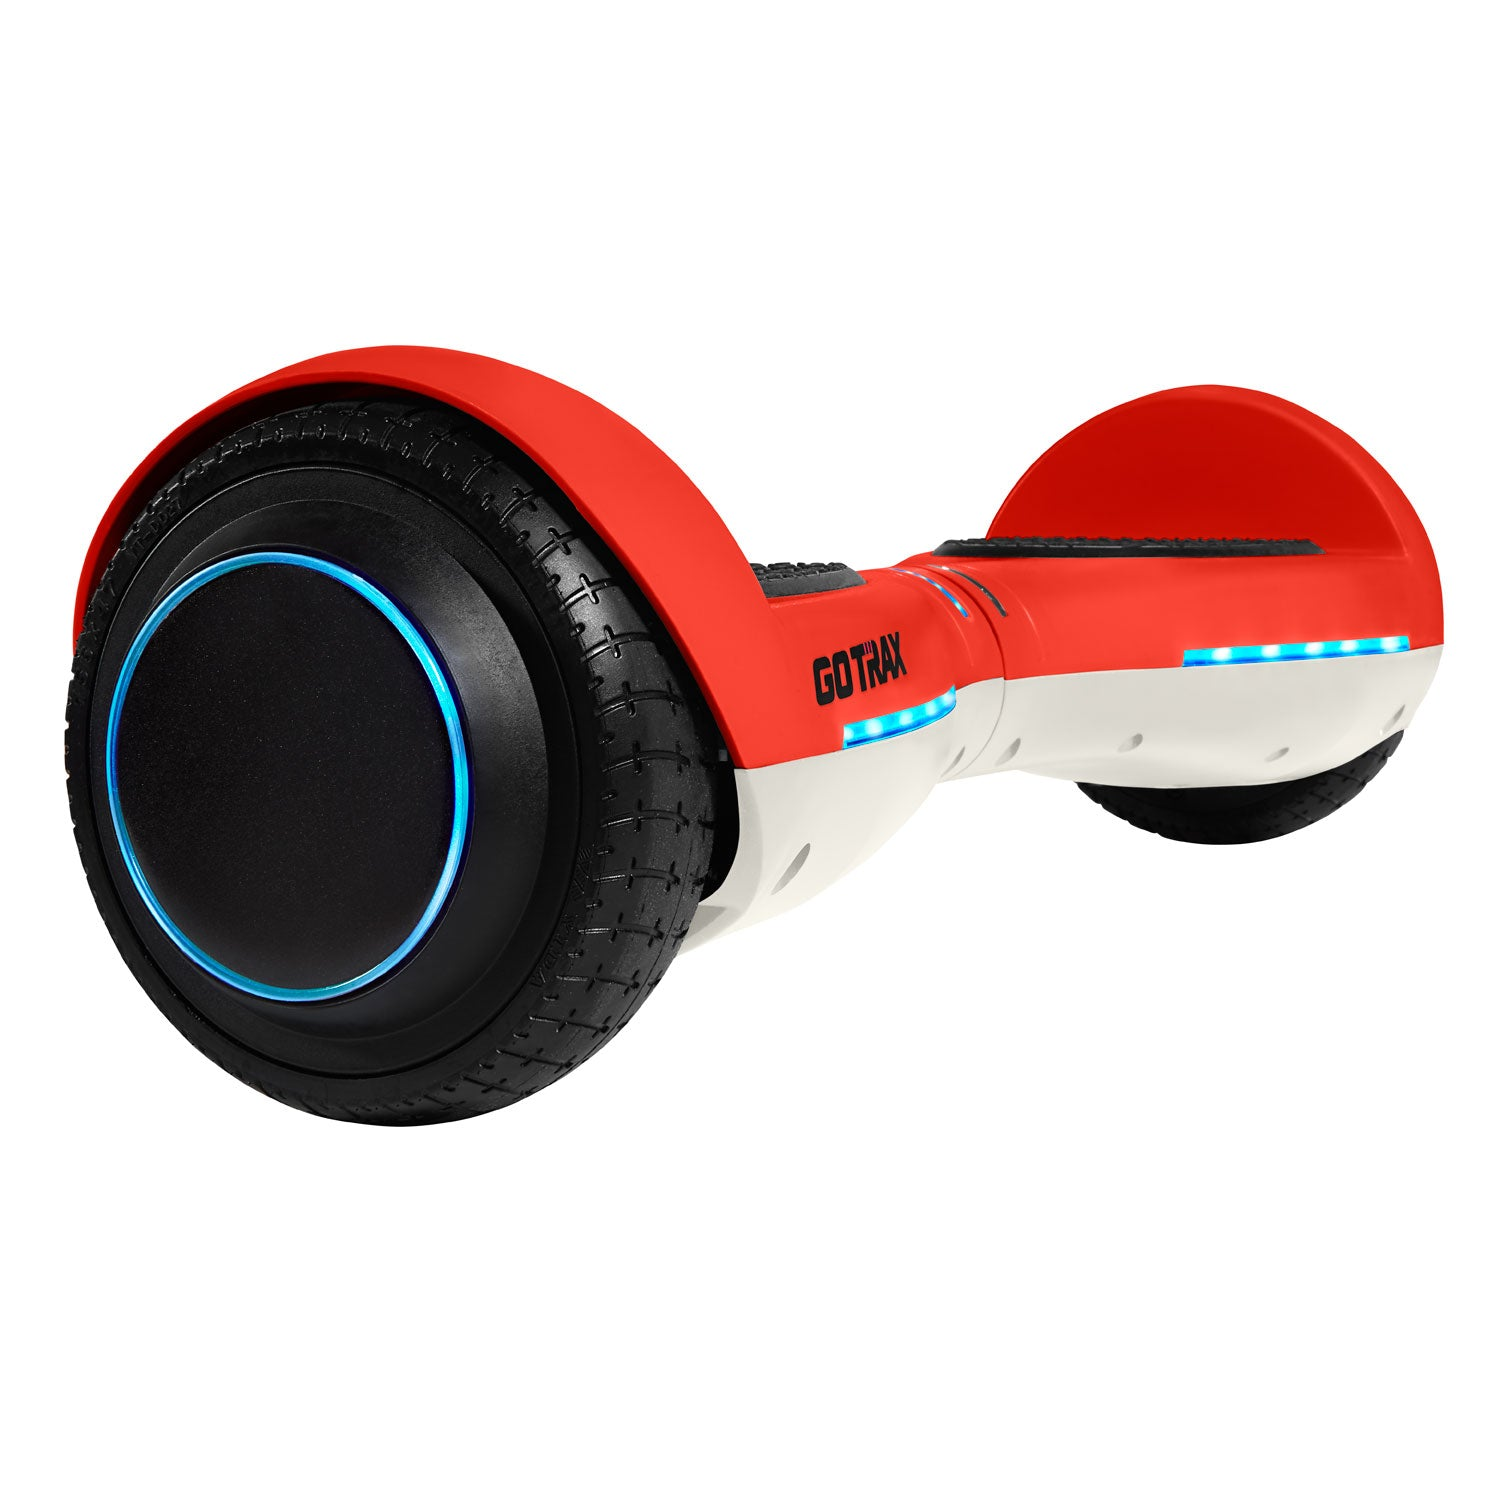 Red ion hoverboard main image